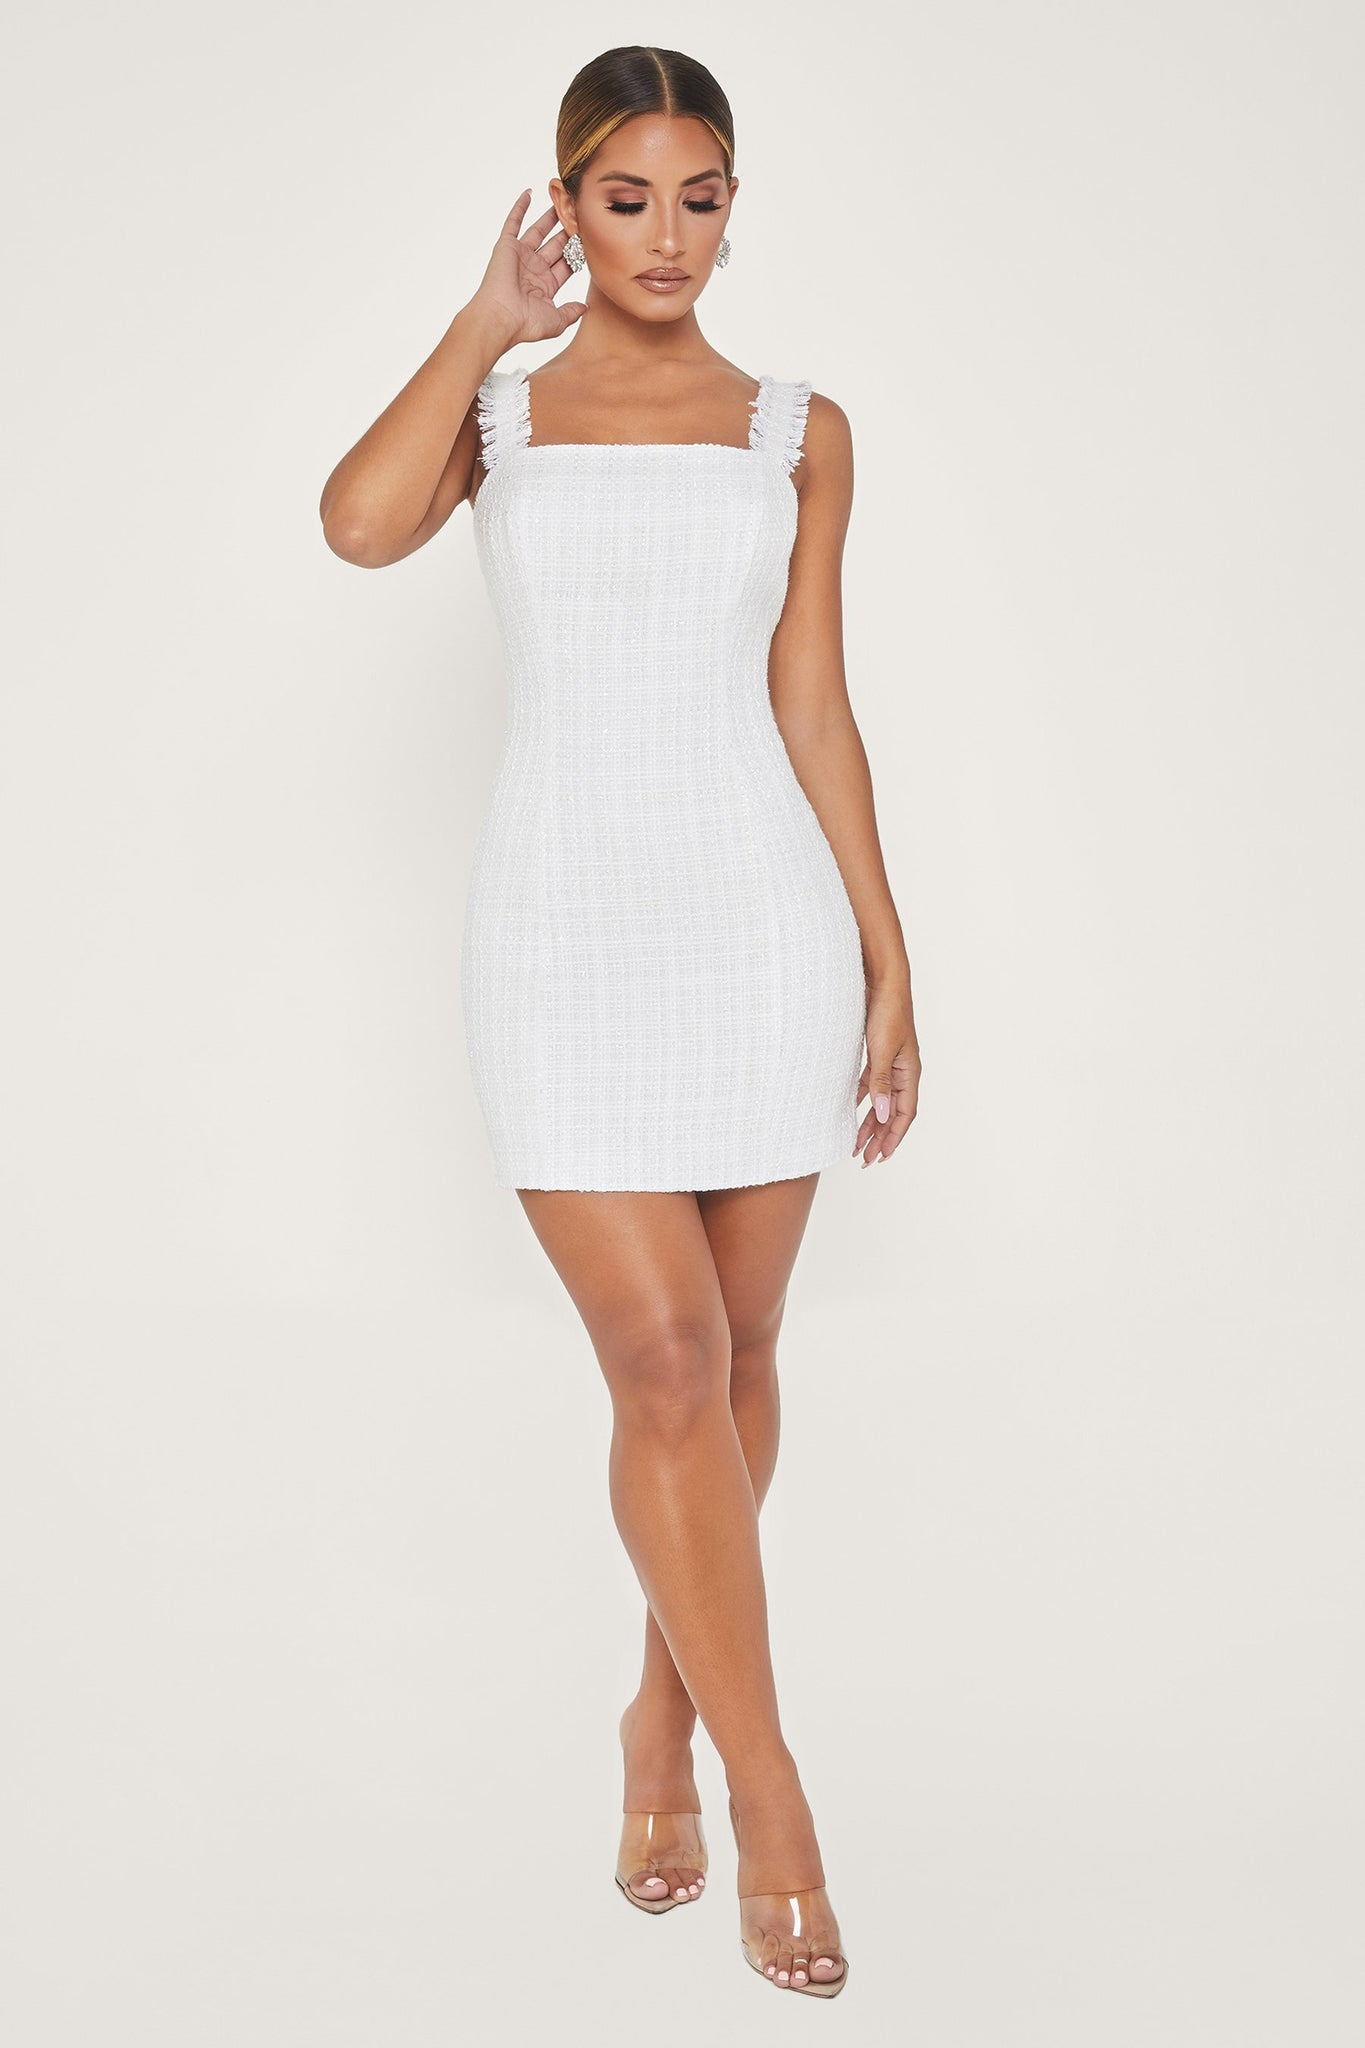 Celena Tweed Mini Dress - White - MESHKI